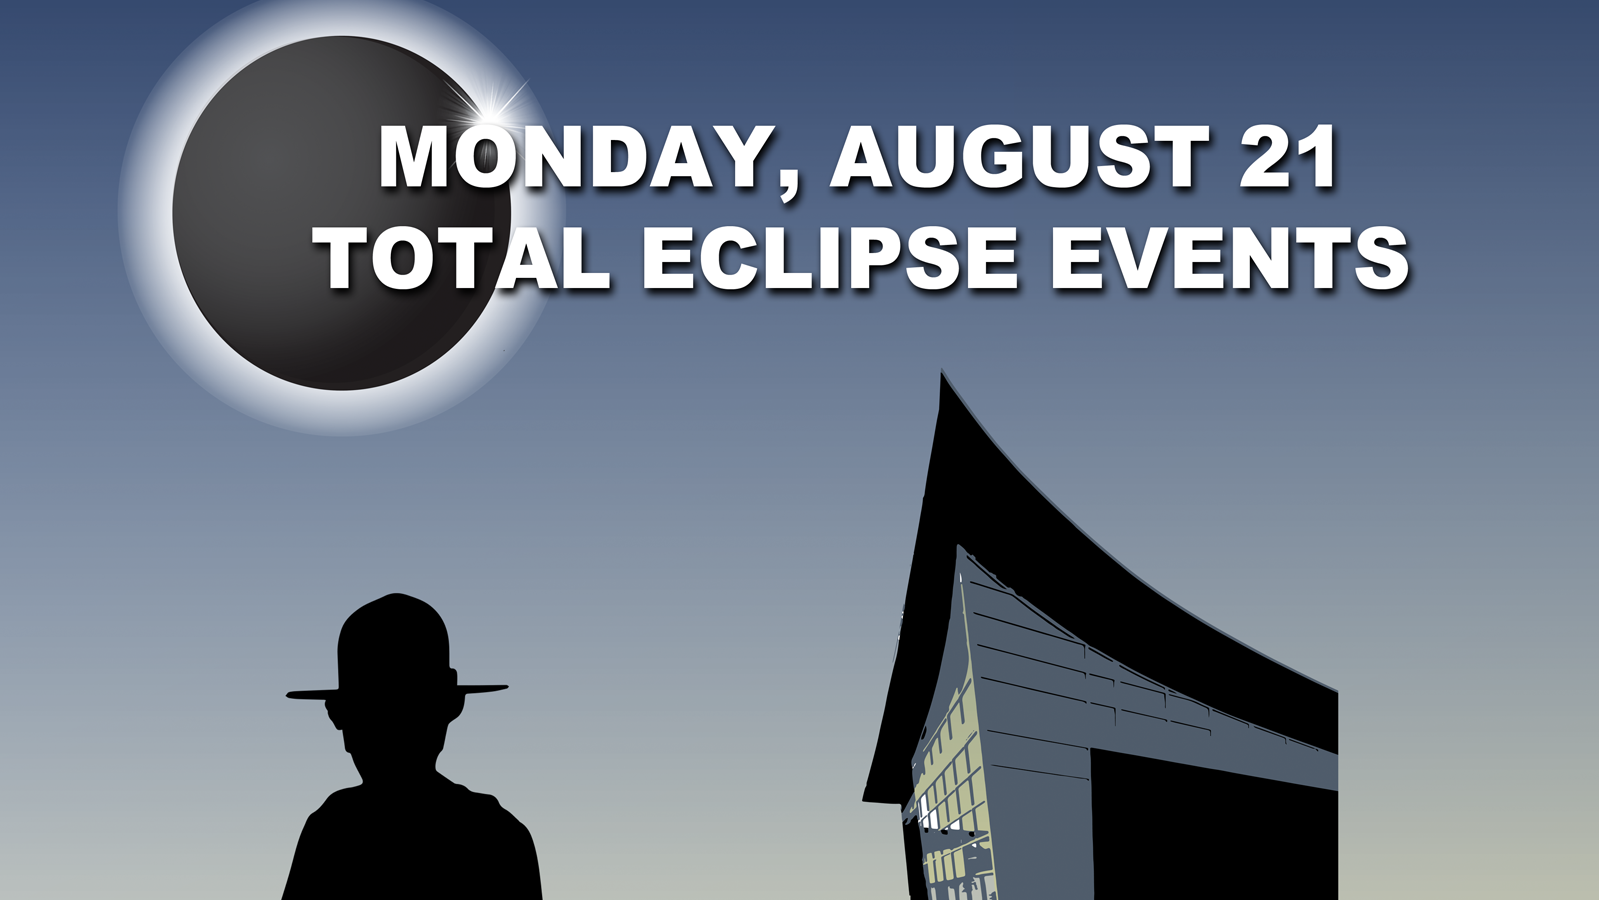 Monday, August 21 - Totality Schedule